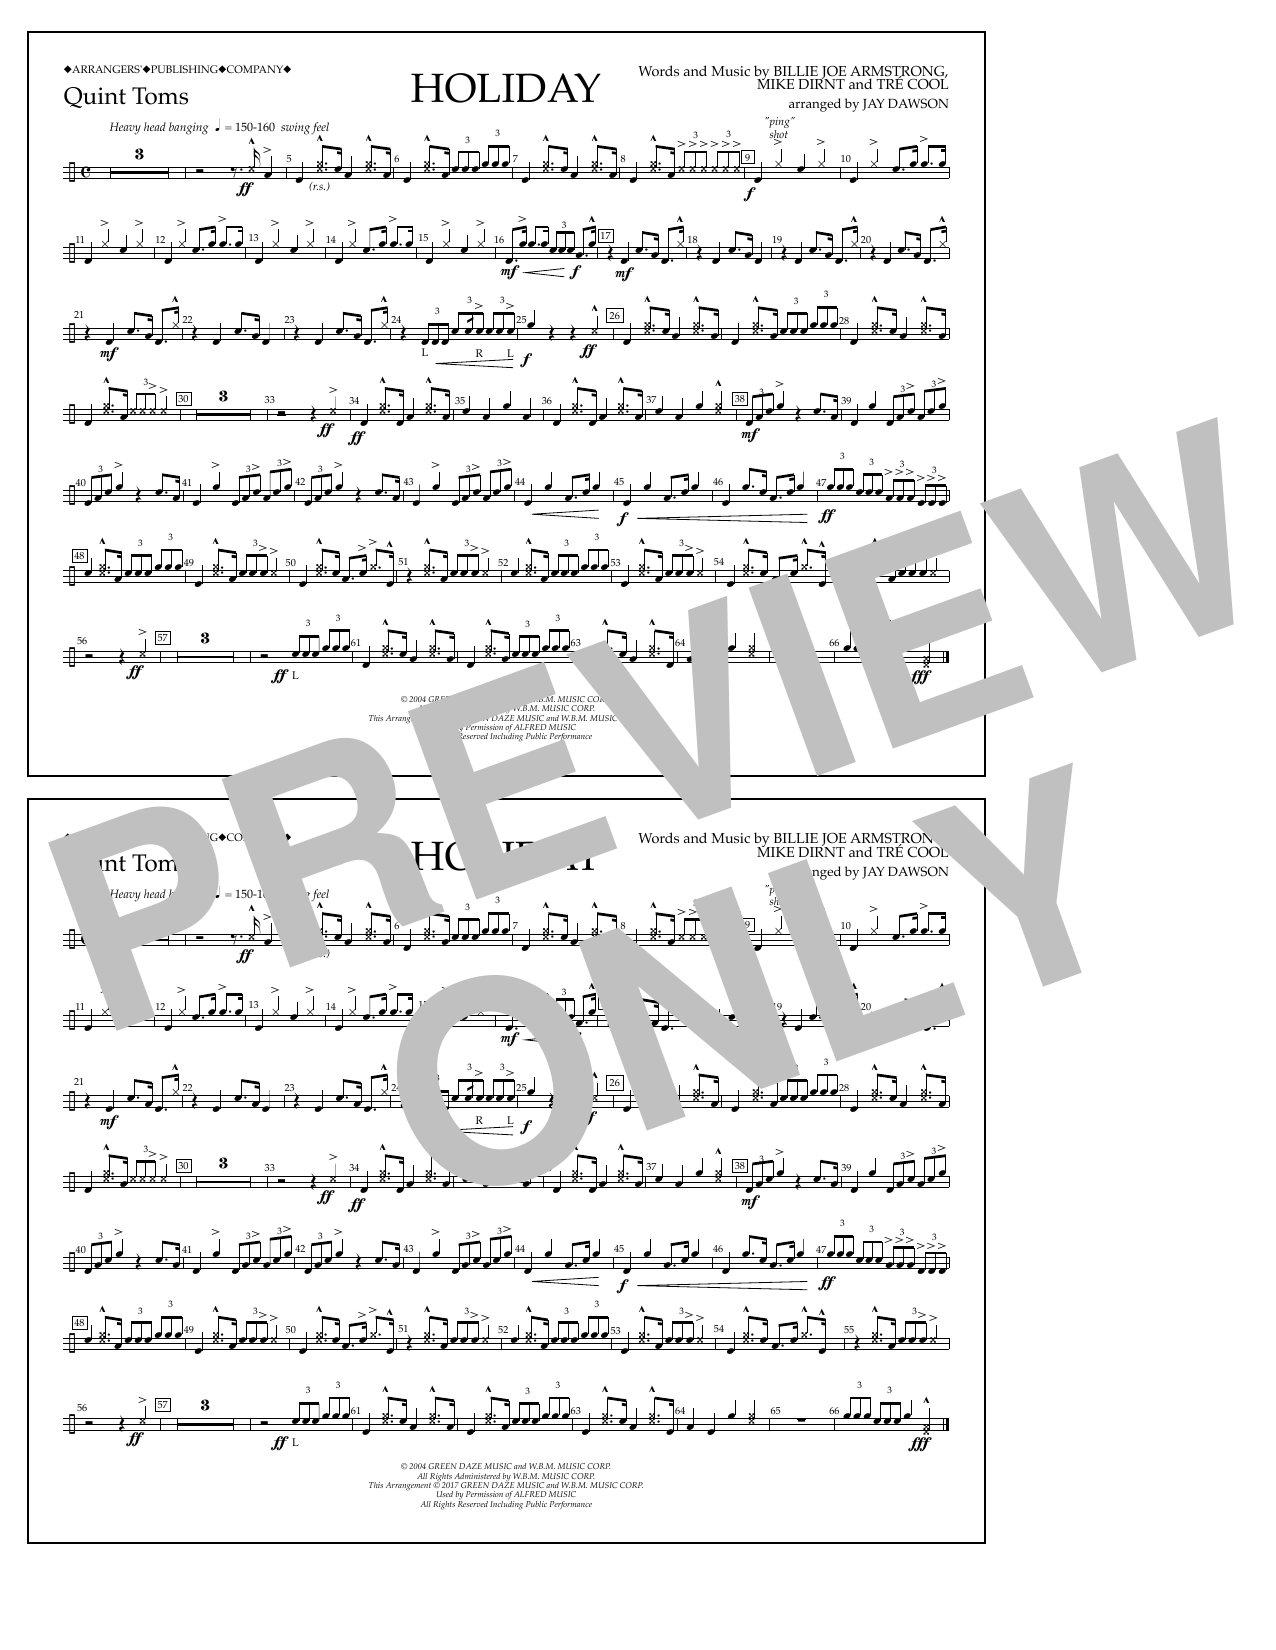 Holiday - Quint-Toms Sheet Music